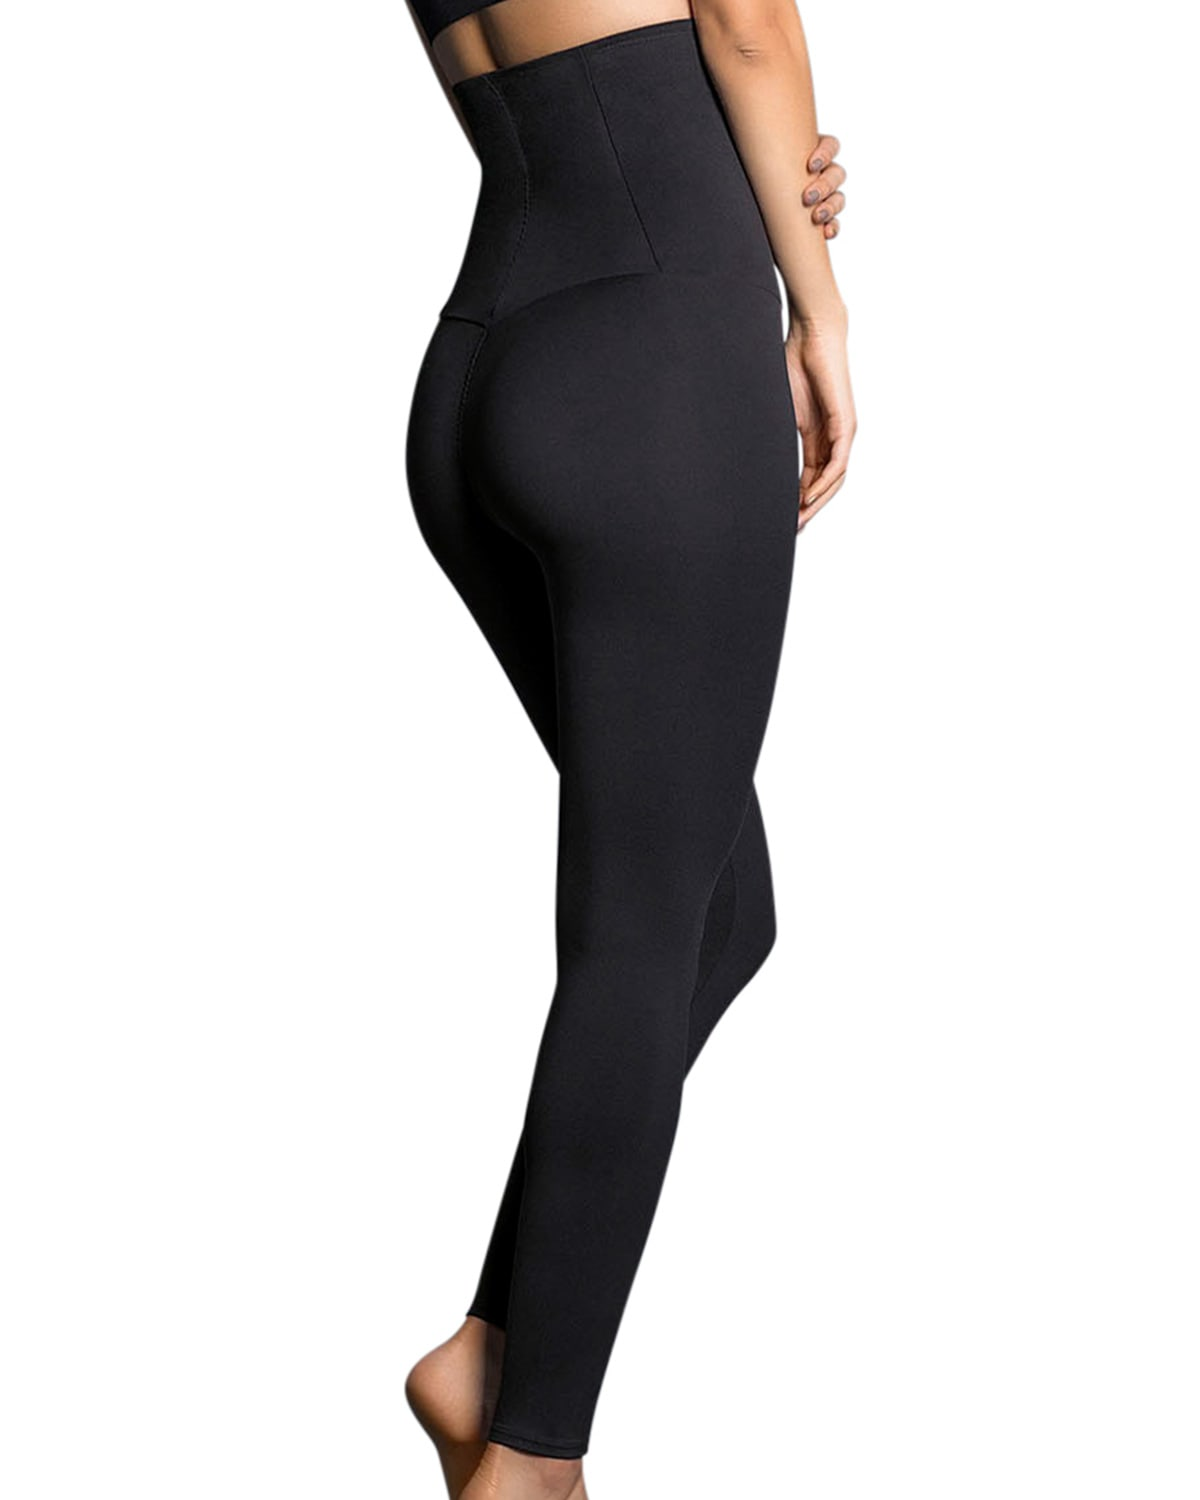 1ebf86ad236c3a Extra High-Waisted Firm Compression Legging - ActiveLife | Leonisa